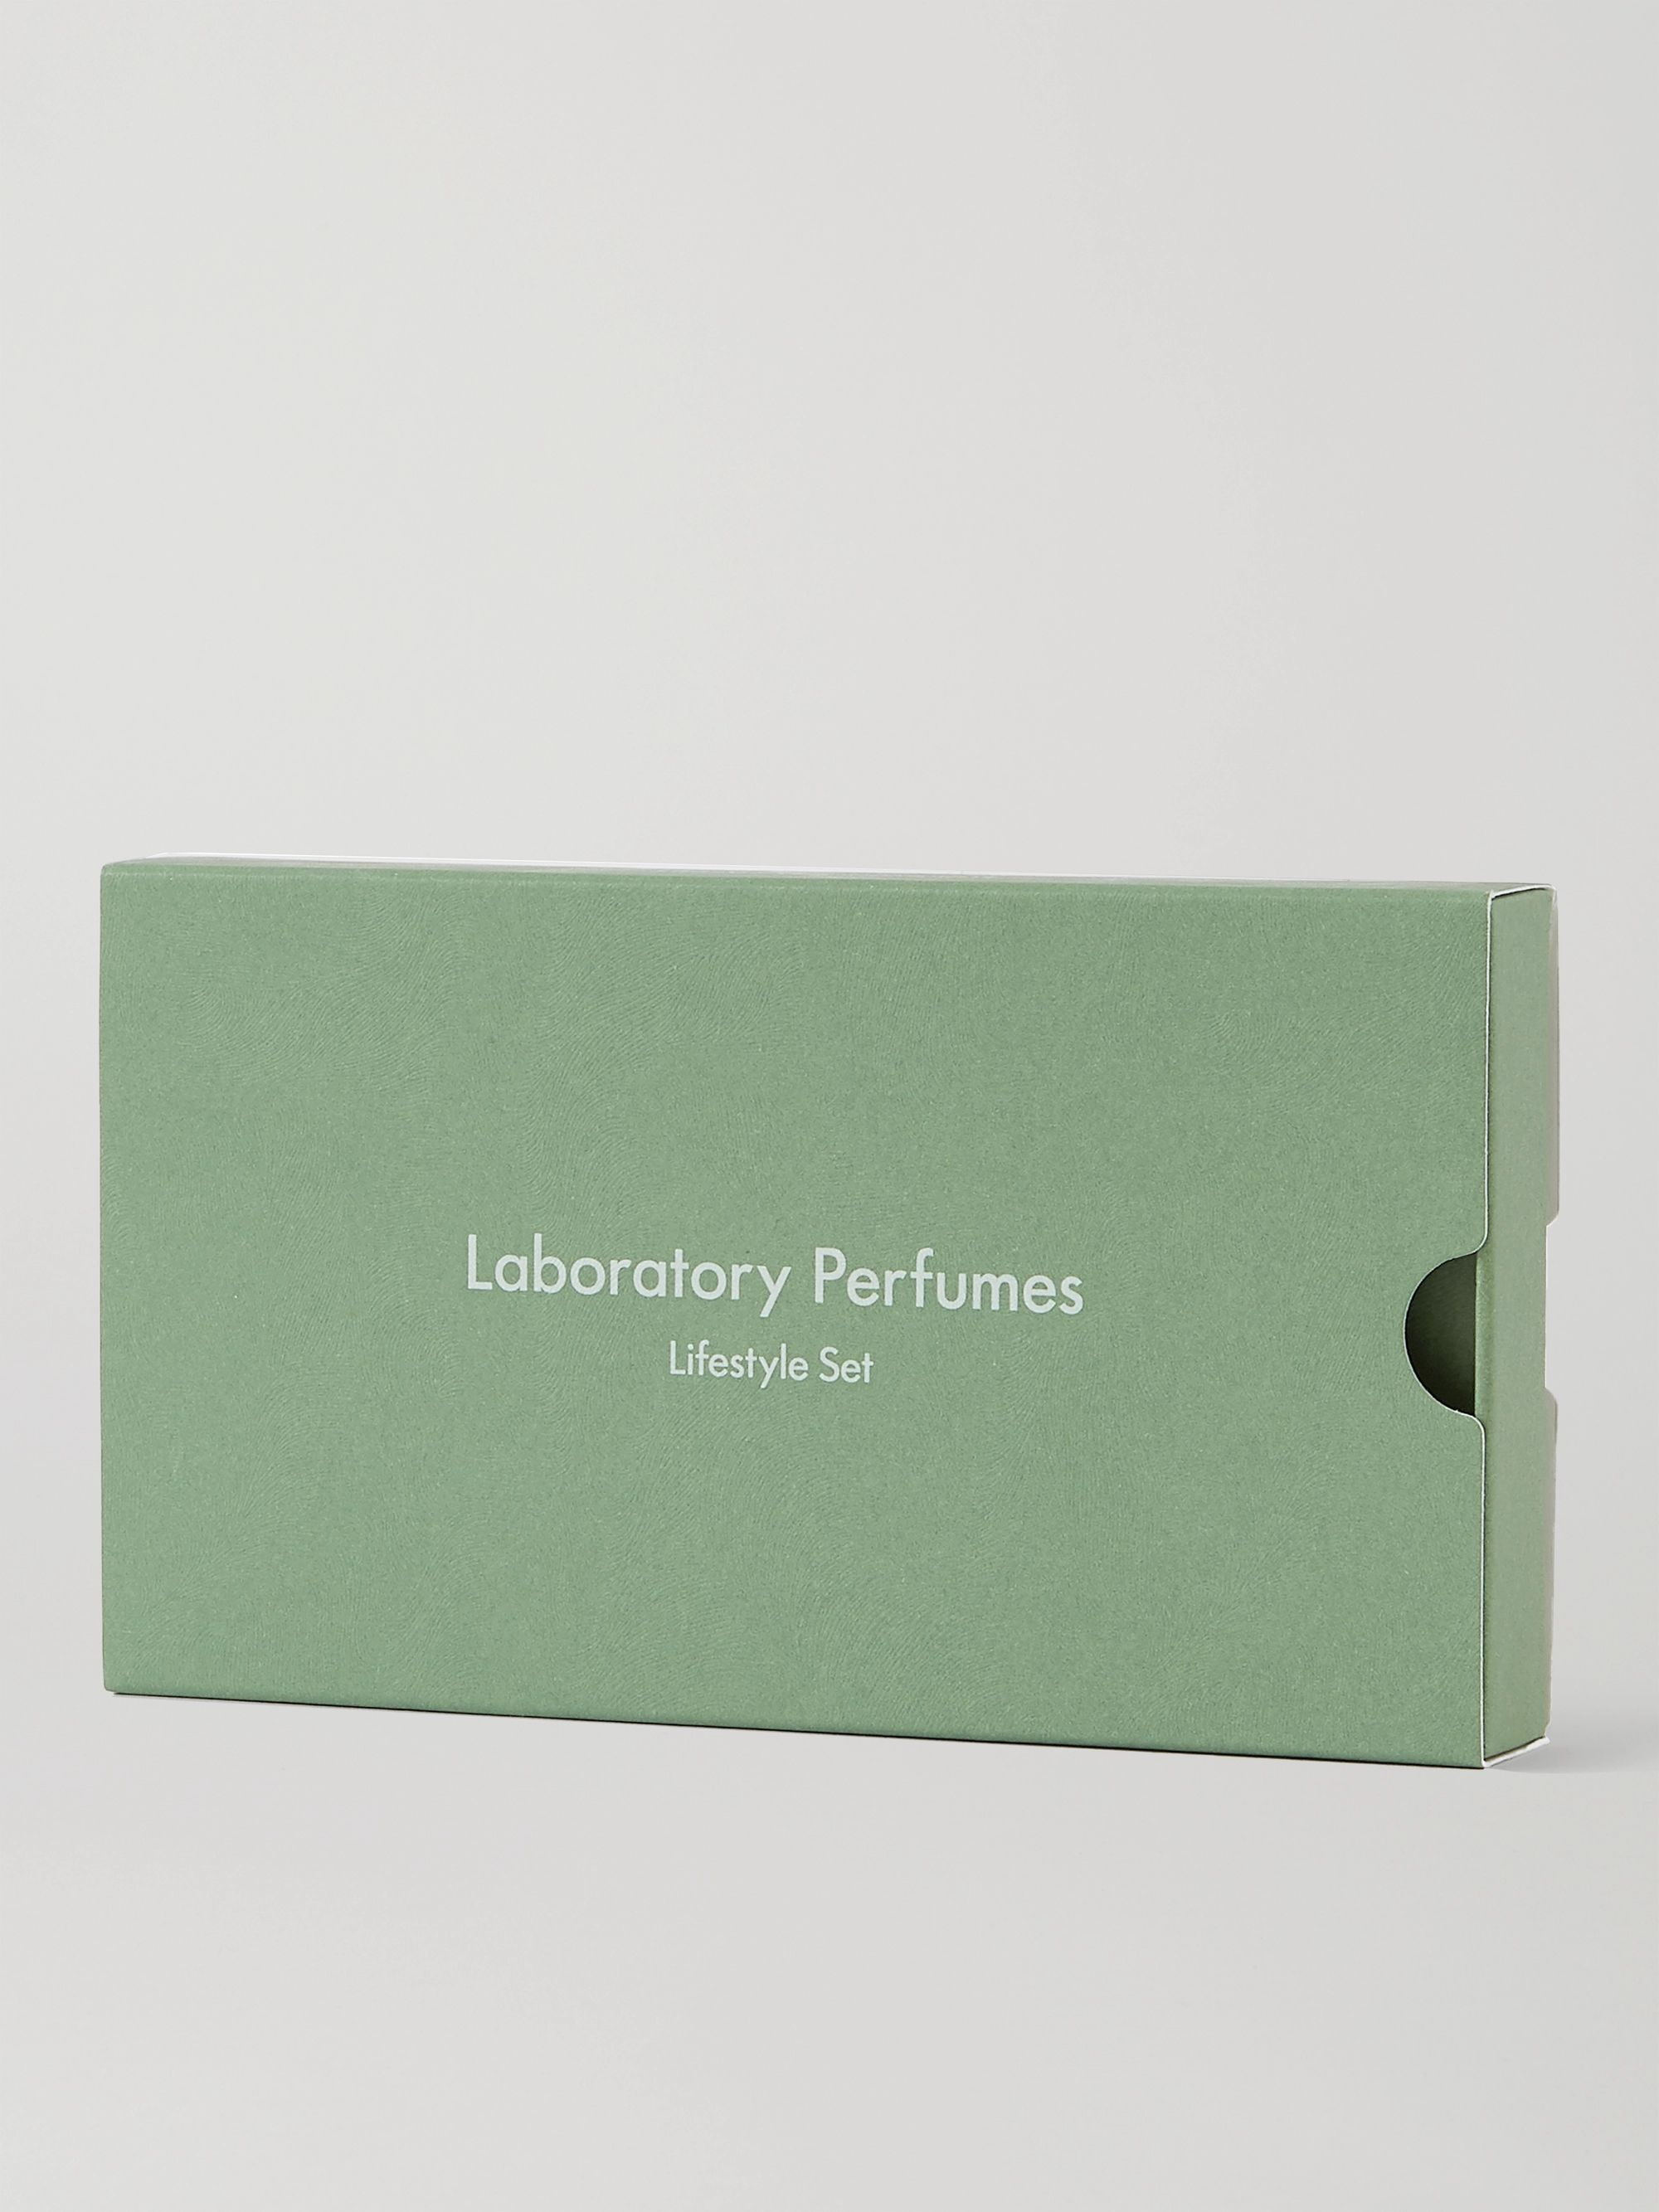 Laboratory Perfumes Lifestyle Set, 5 x 5ml